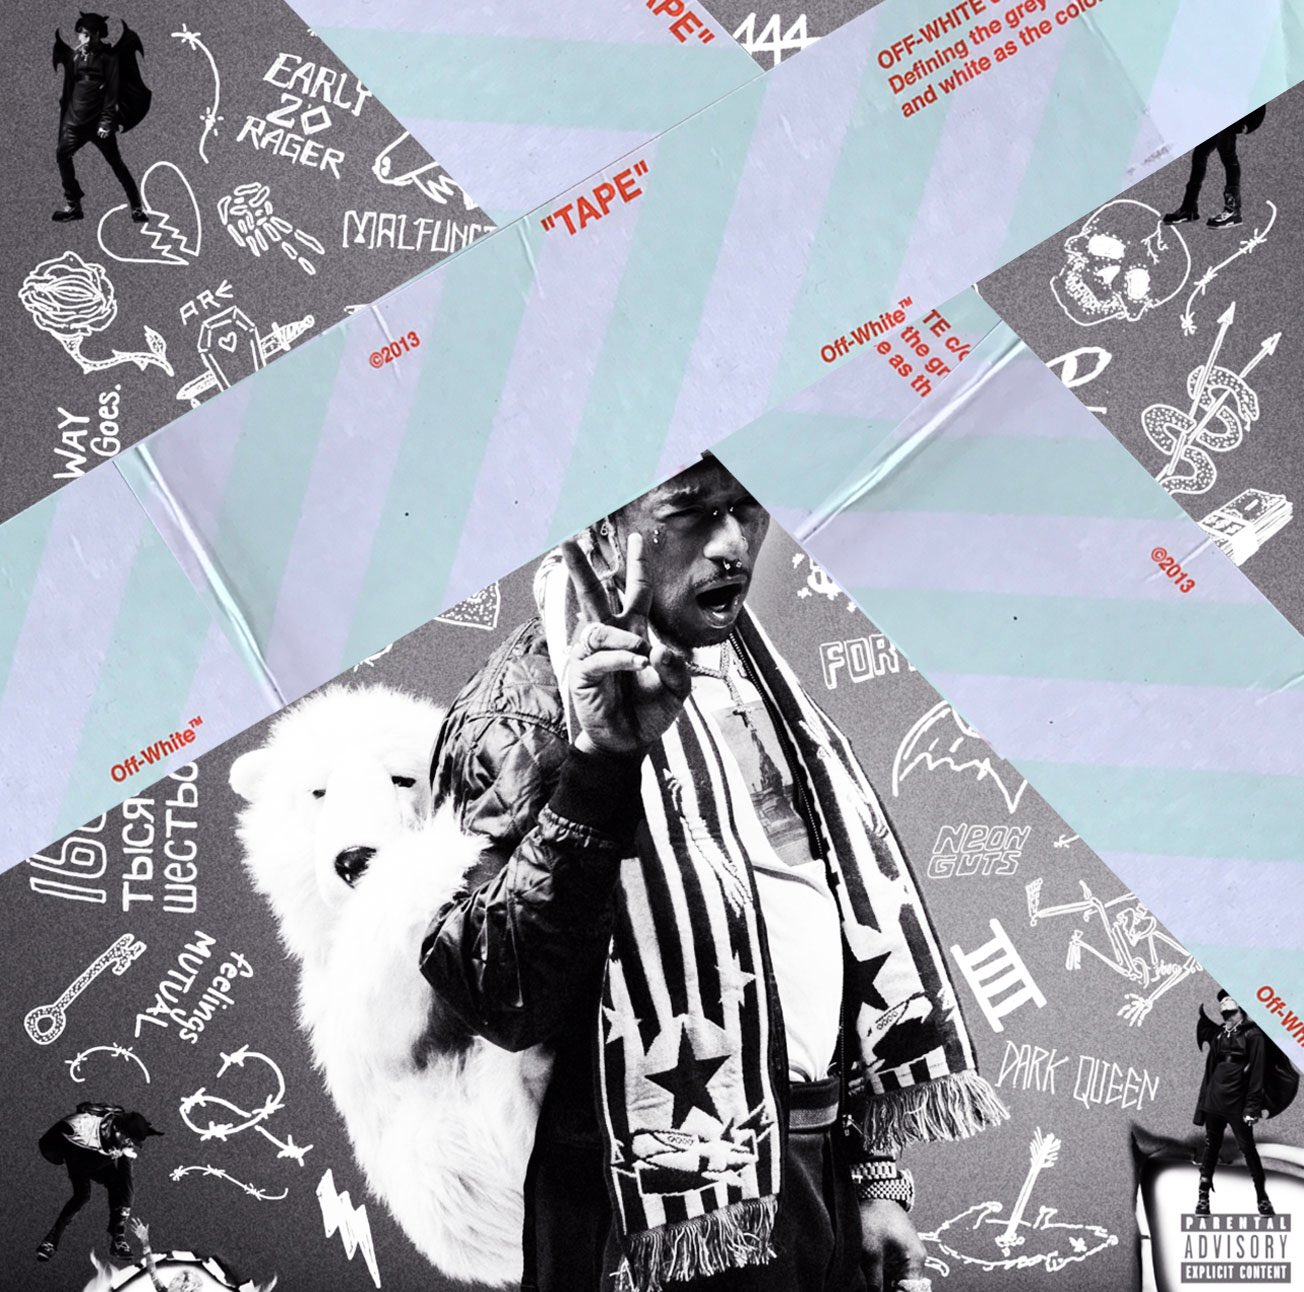 Lil Uzi Vert Luv Is Rage 2 Album Stream Inthrill 3 bonus songs only available through the deluxe edition! lil uzi vert luv is rage 2 album